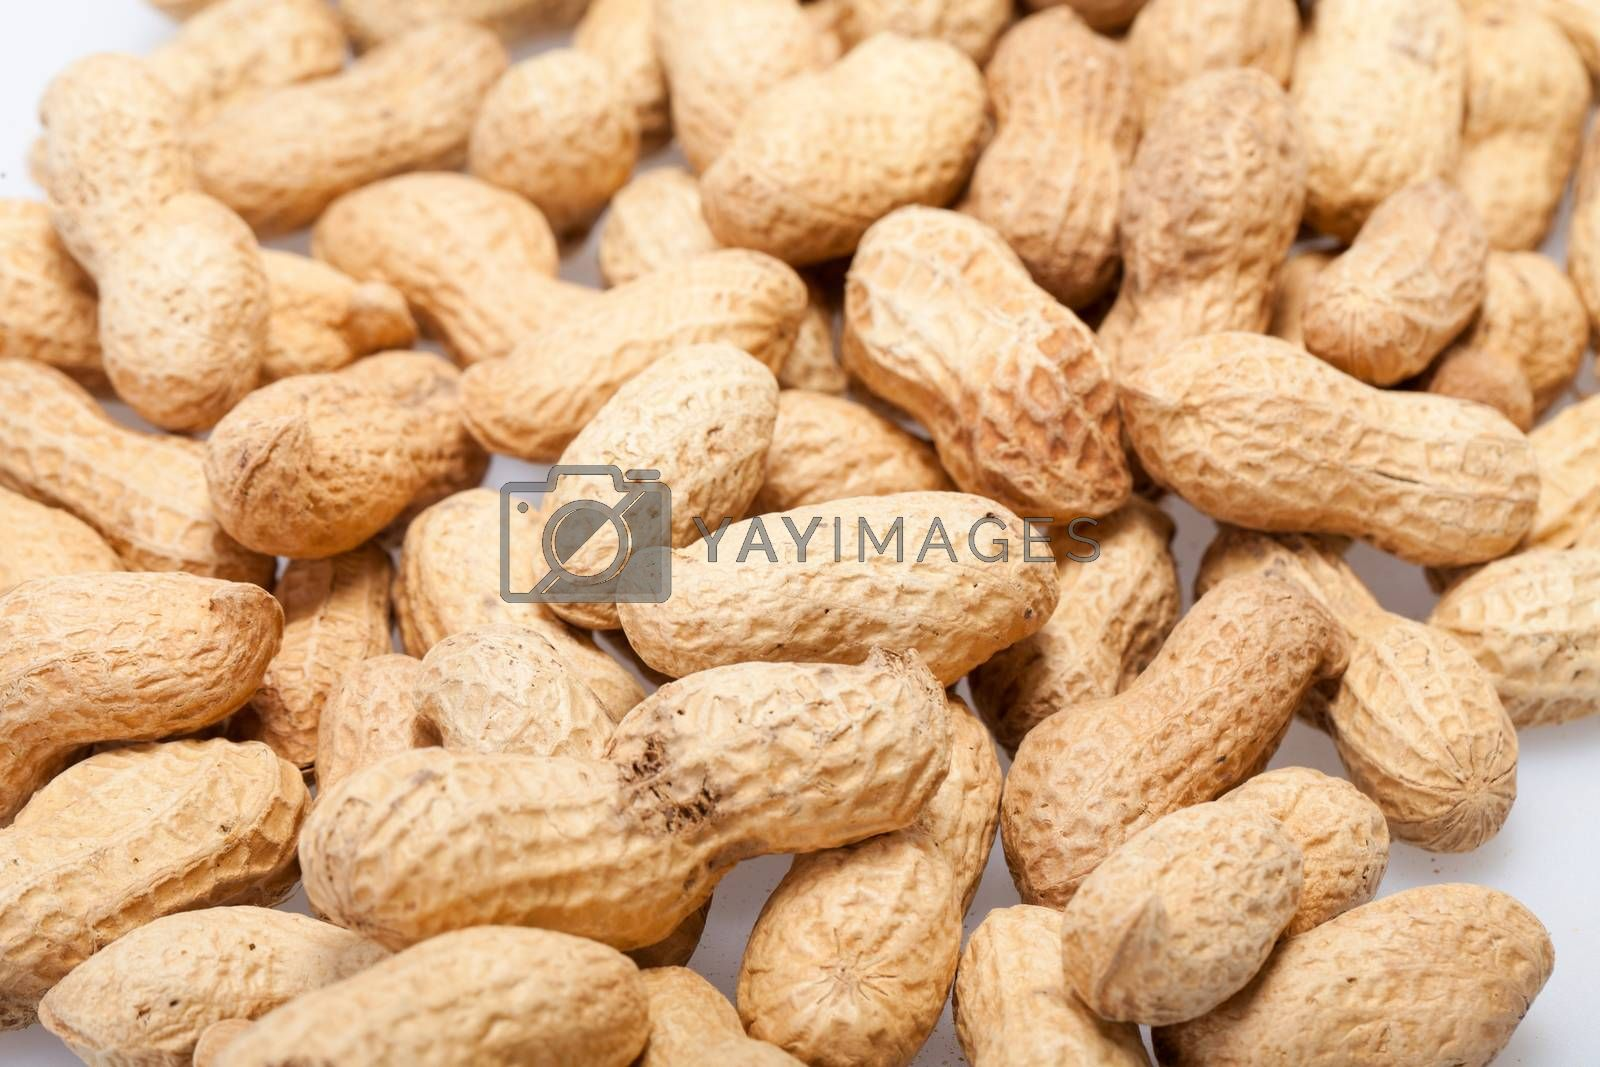 Dried peanuts in closeup on the white background